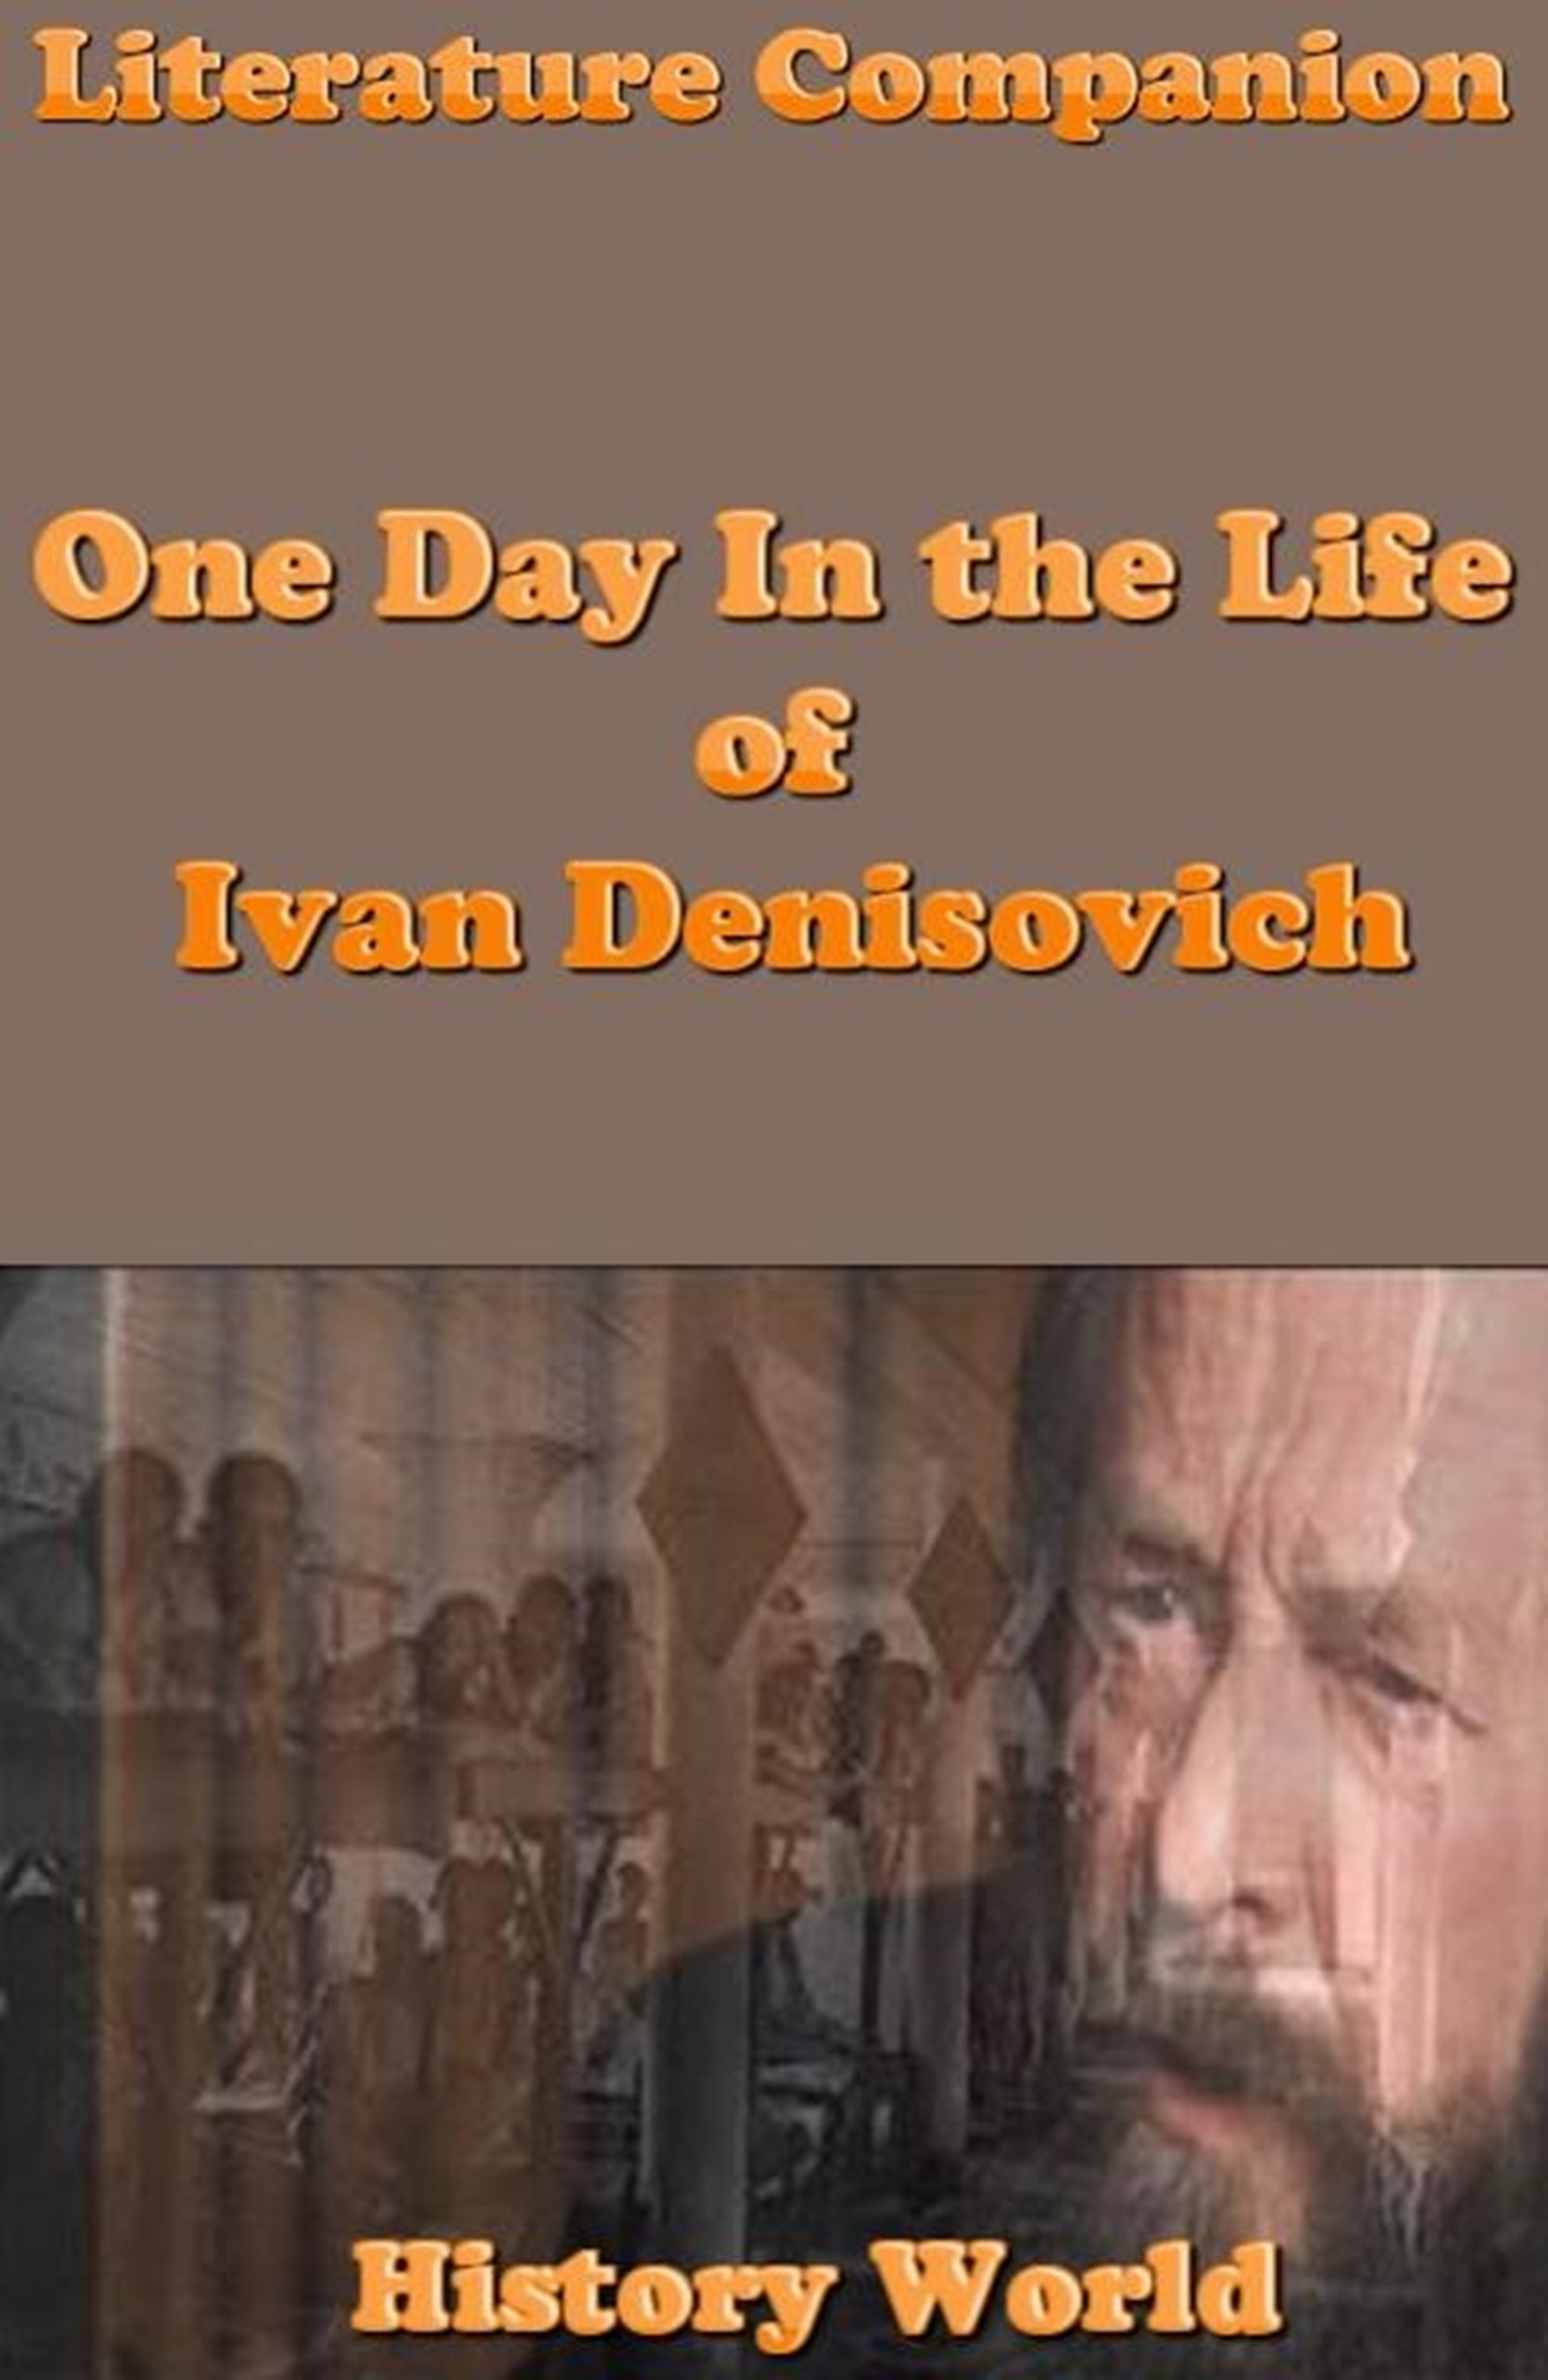 one day in the life of ivan denisovich analysis